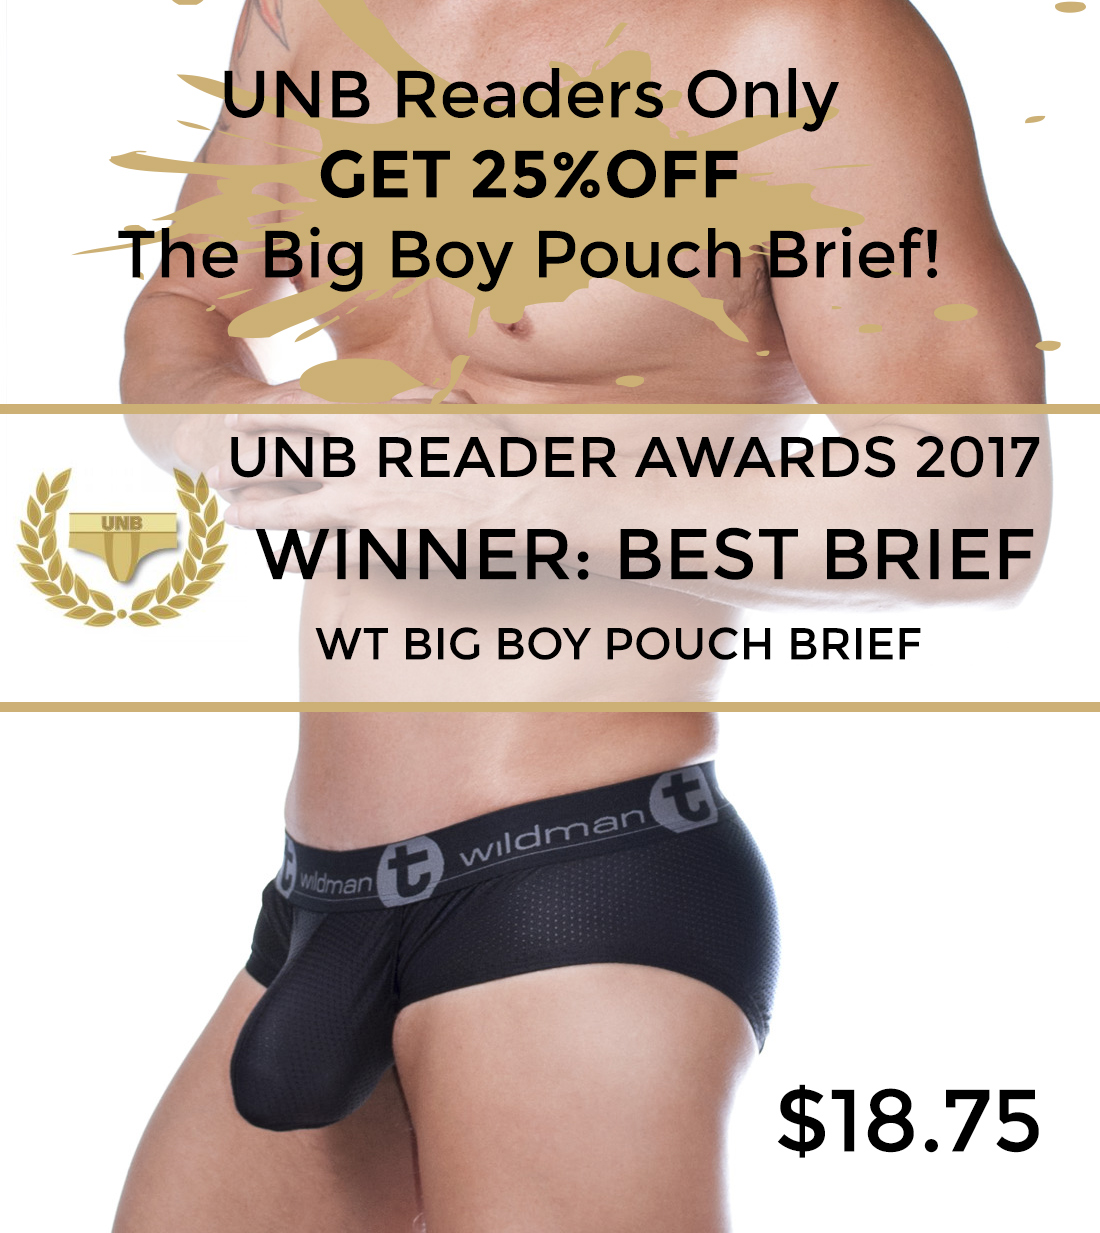 Get the Winner of the Best Brief from WildmanT